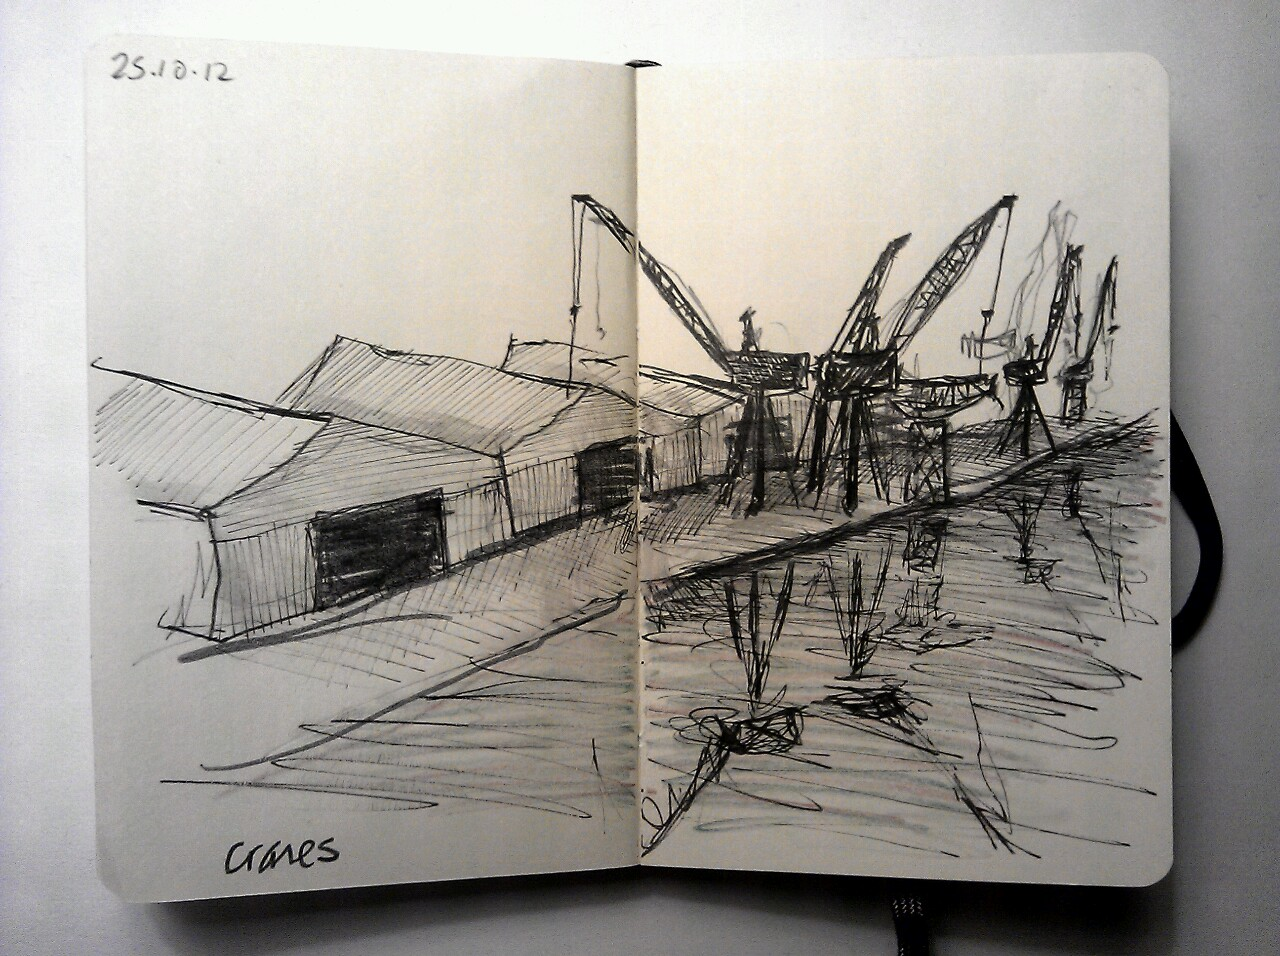 365 drawings later … day 268 … cranes